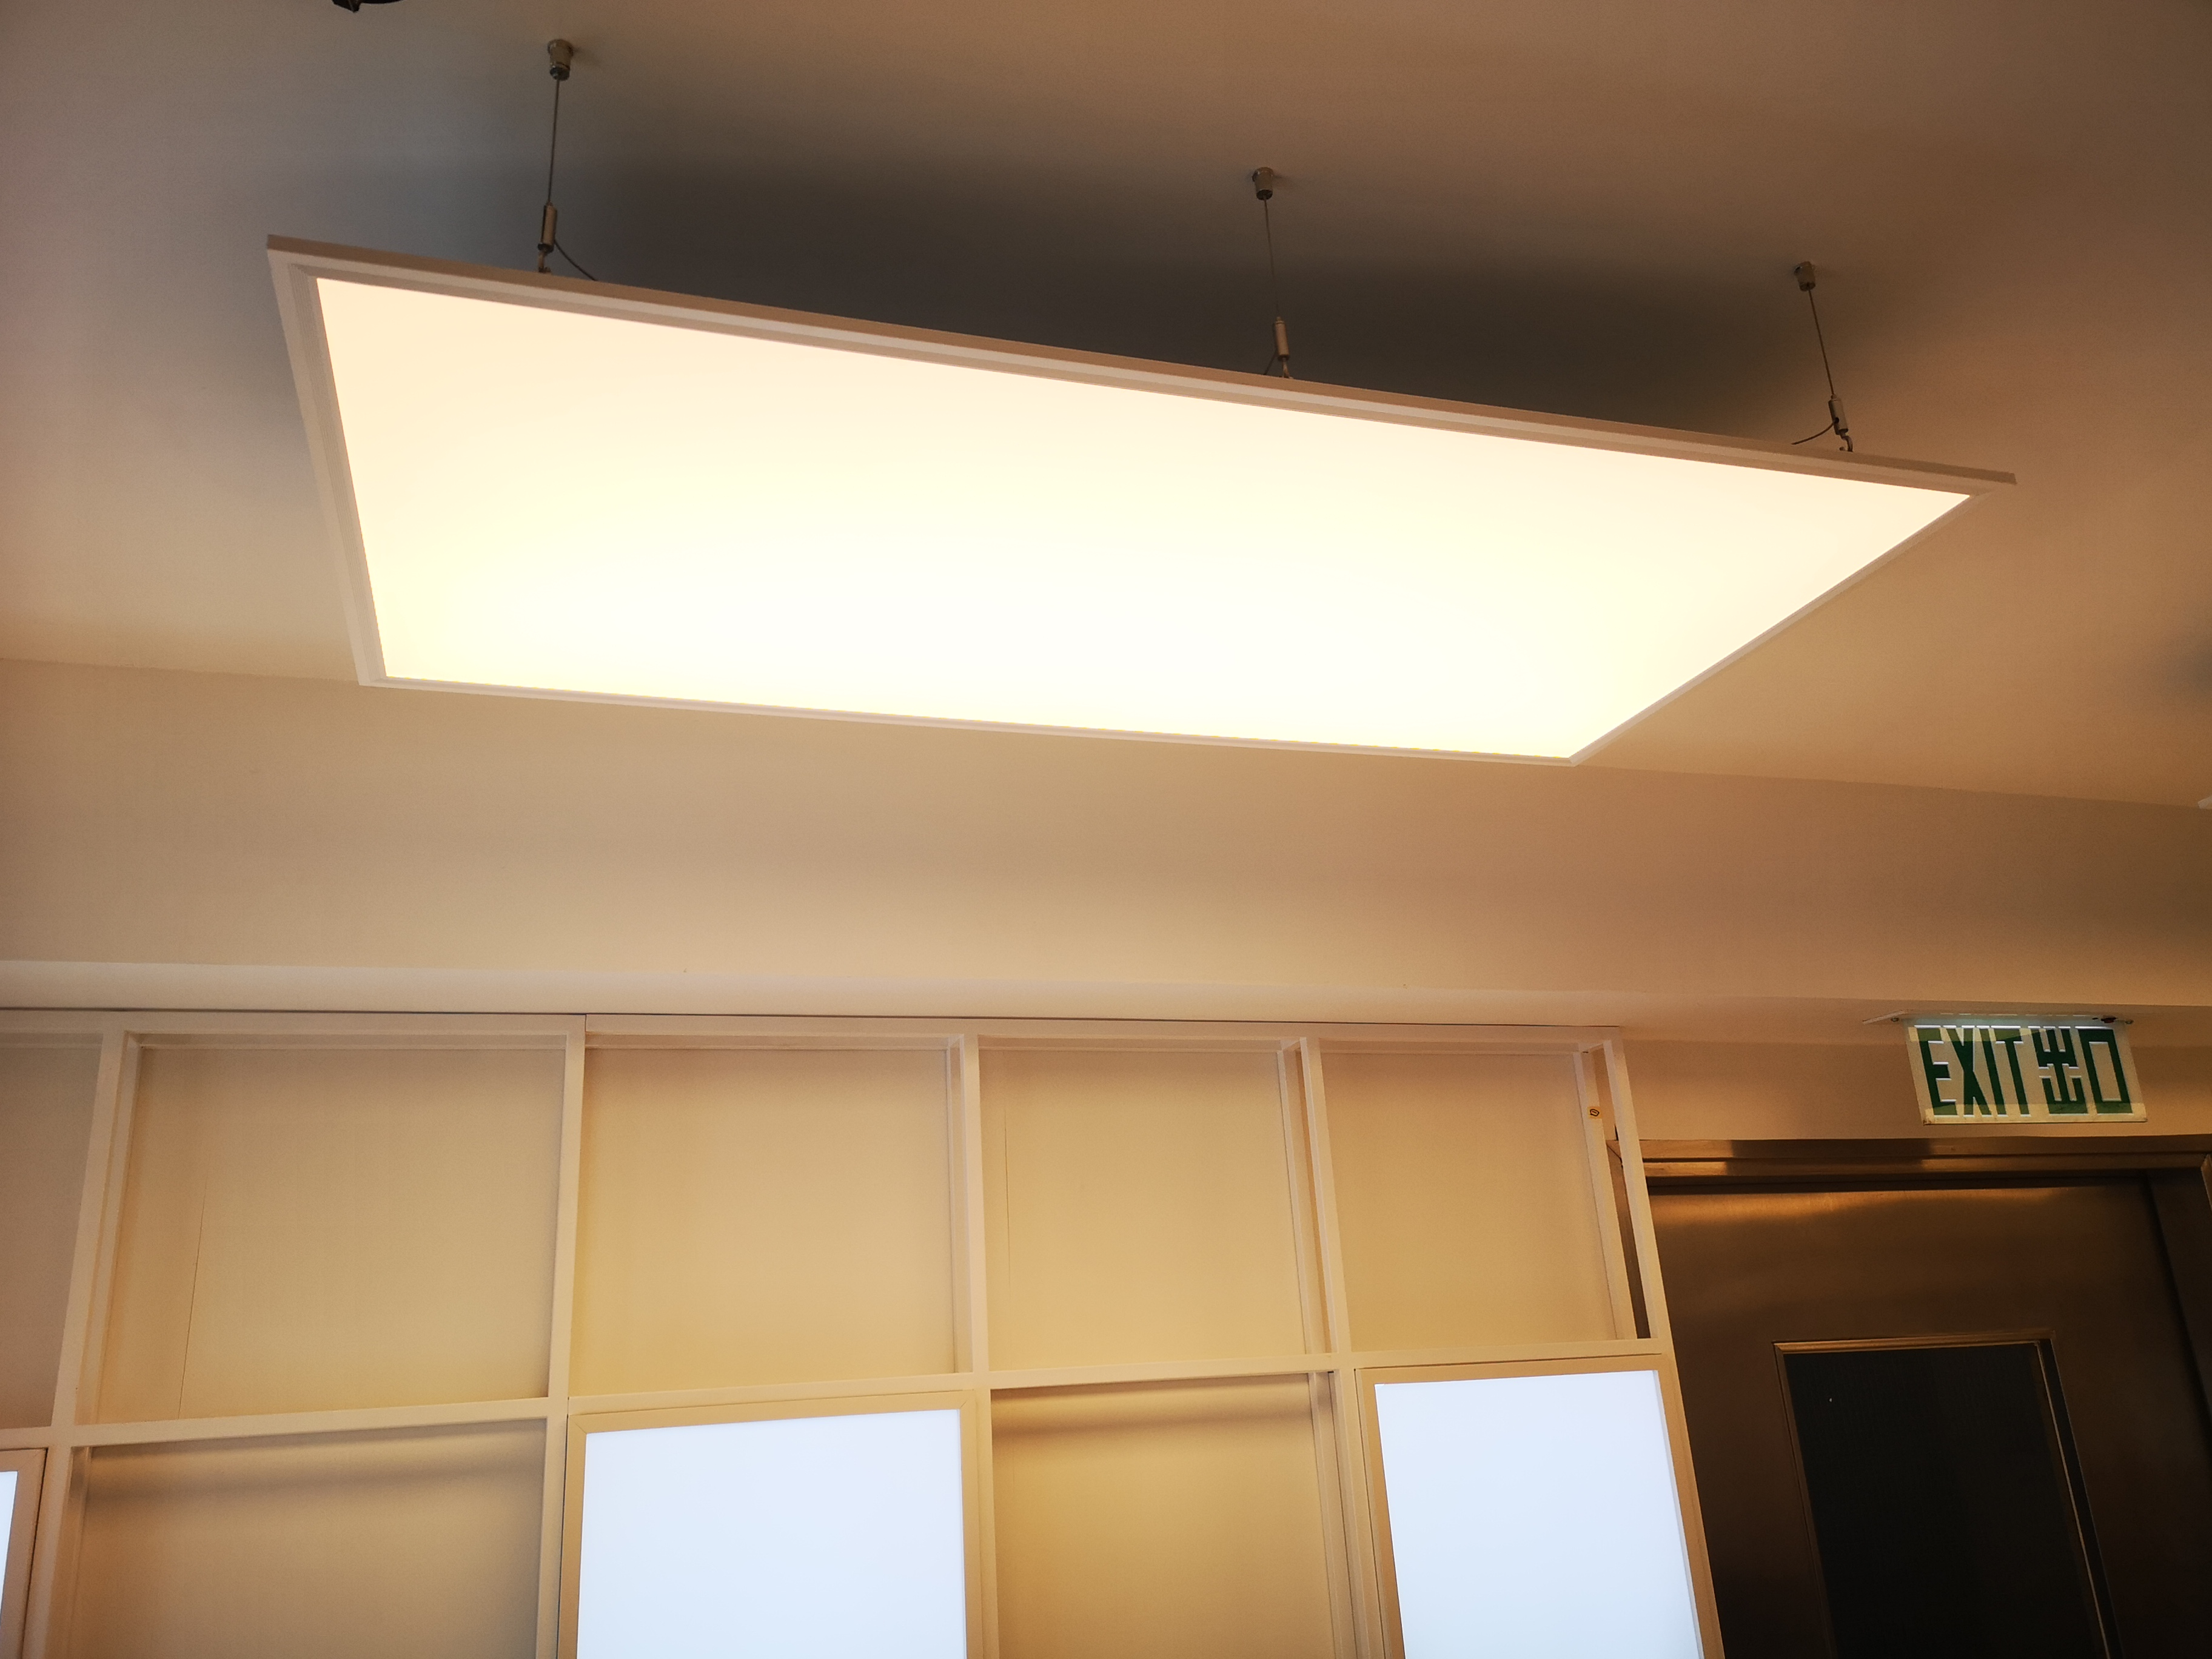 Why are some LED flat lights not bright enough?